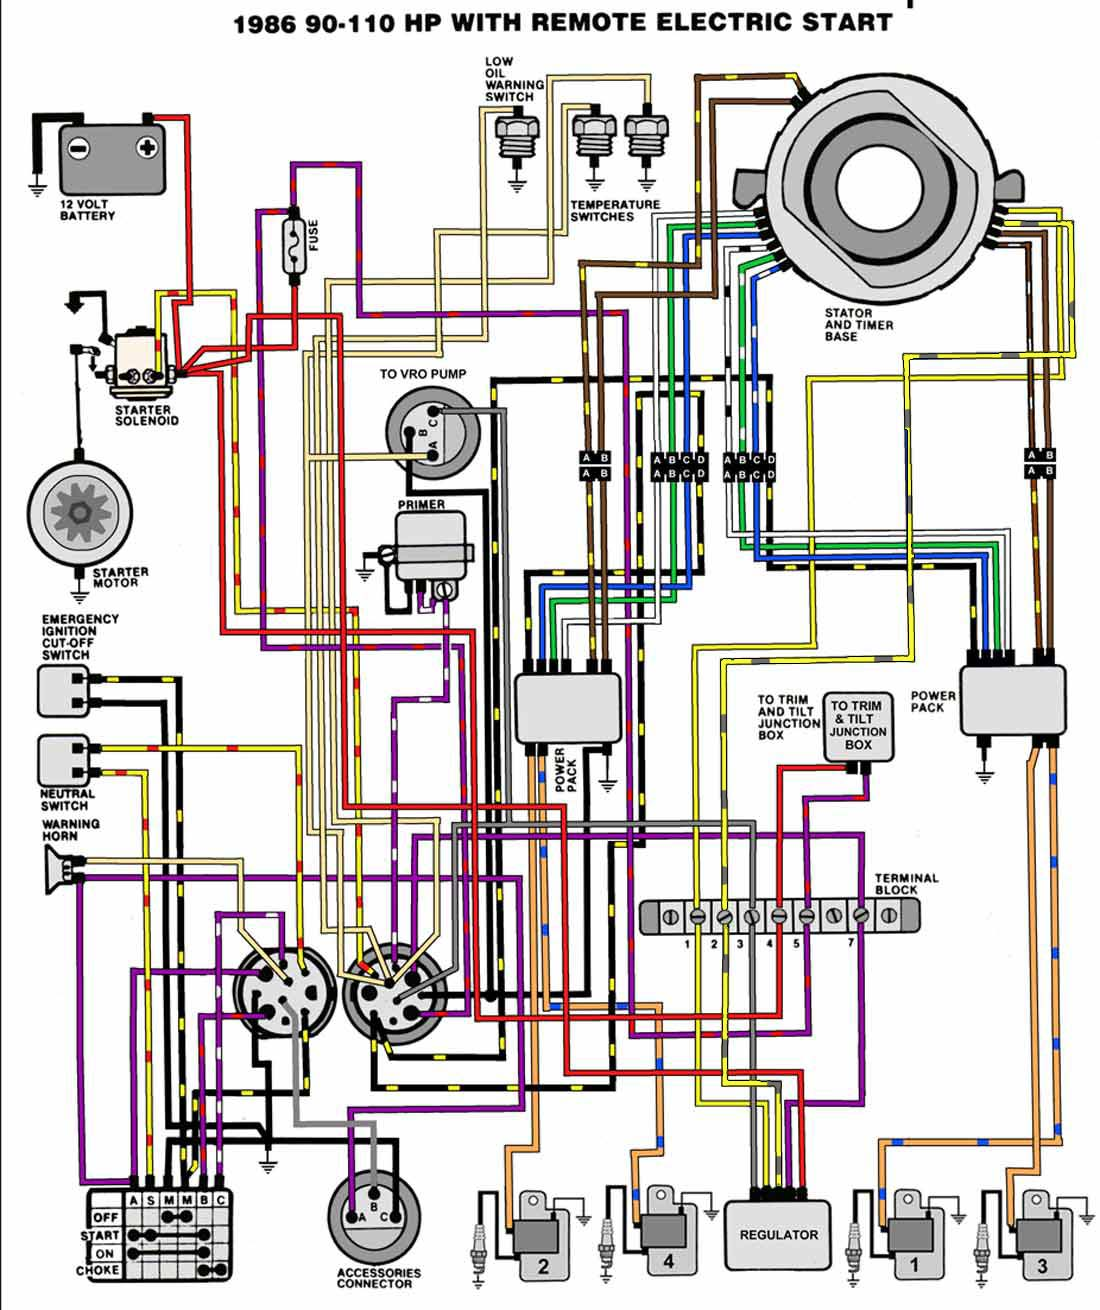 hight resolution of 70 hp johnson ignition switch wiring diagram wiring diagram home 75 hp johnson ignition wiring